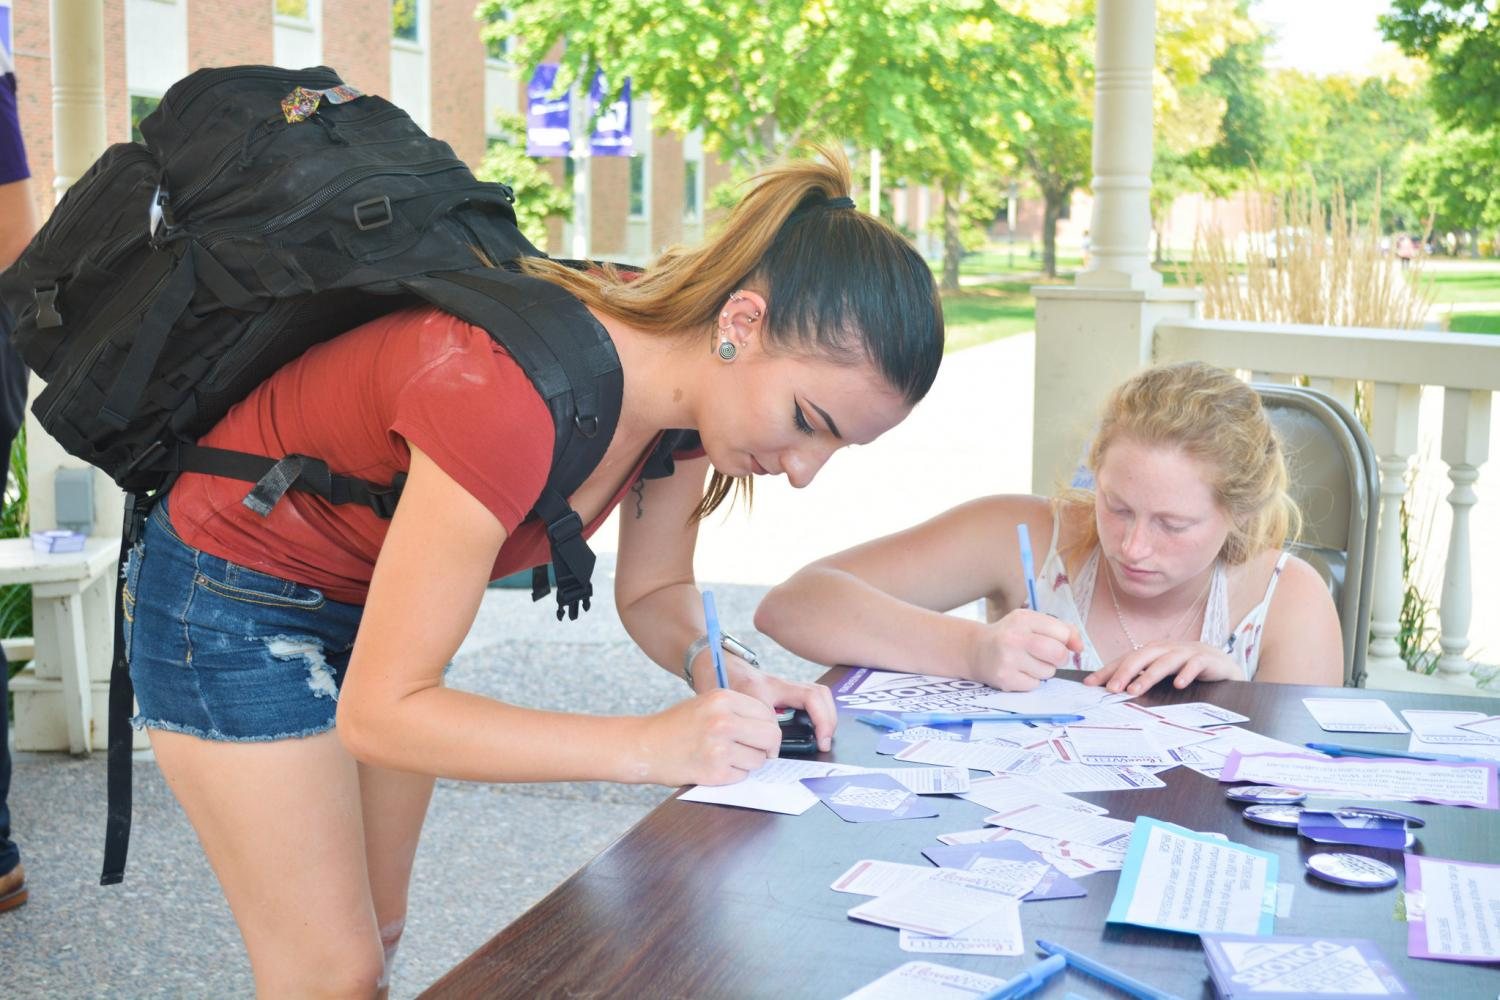 Left+to+right%3A+Seniors+Samantha+Reichert+and+Kamille+Flandrena+wrote+letters+to+donors.+The+Alumni+Association+asked+students+to+fill+out+postcards+to+donors+and+the+students+were+rewarded+with+free+ice+cream.+